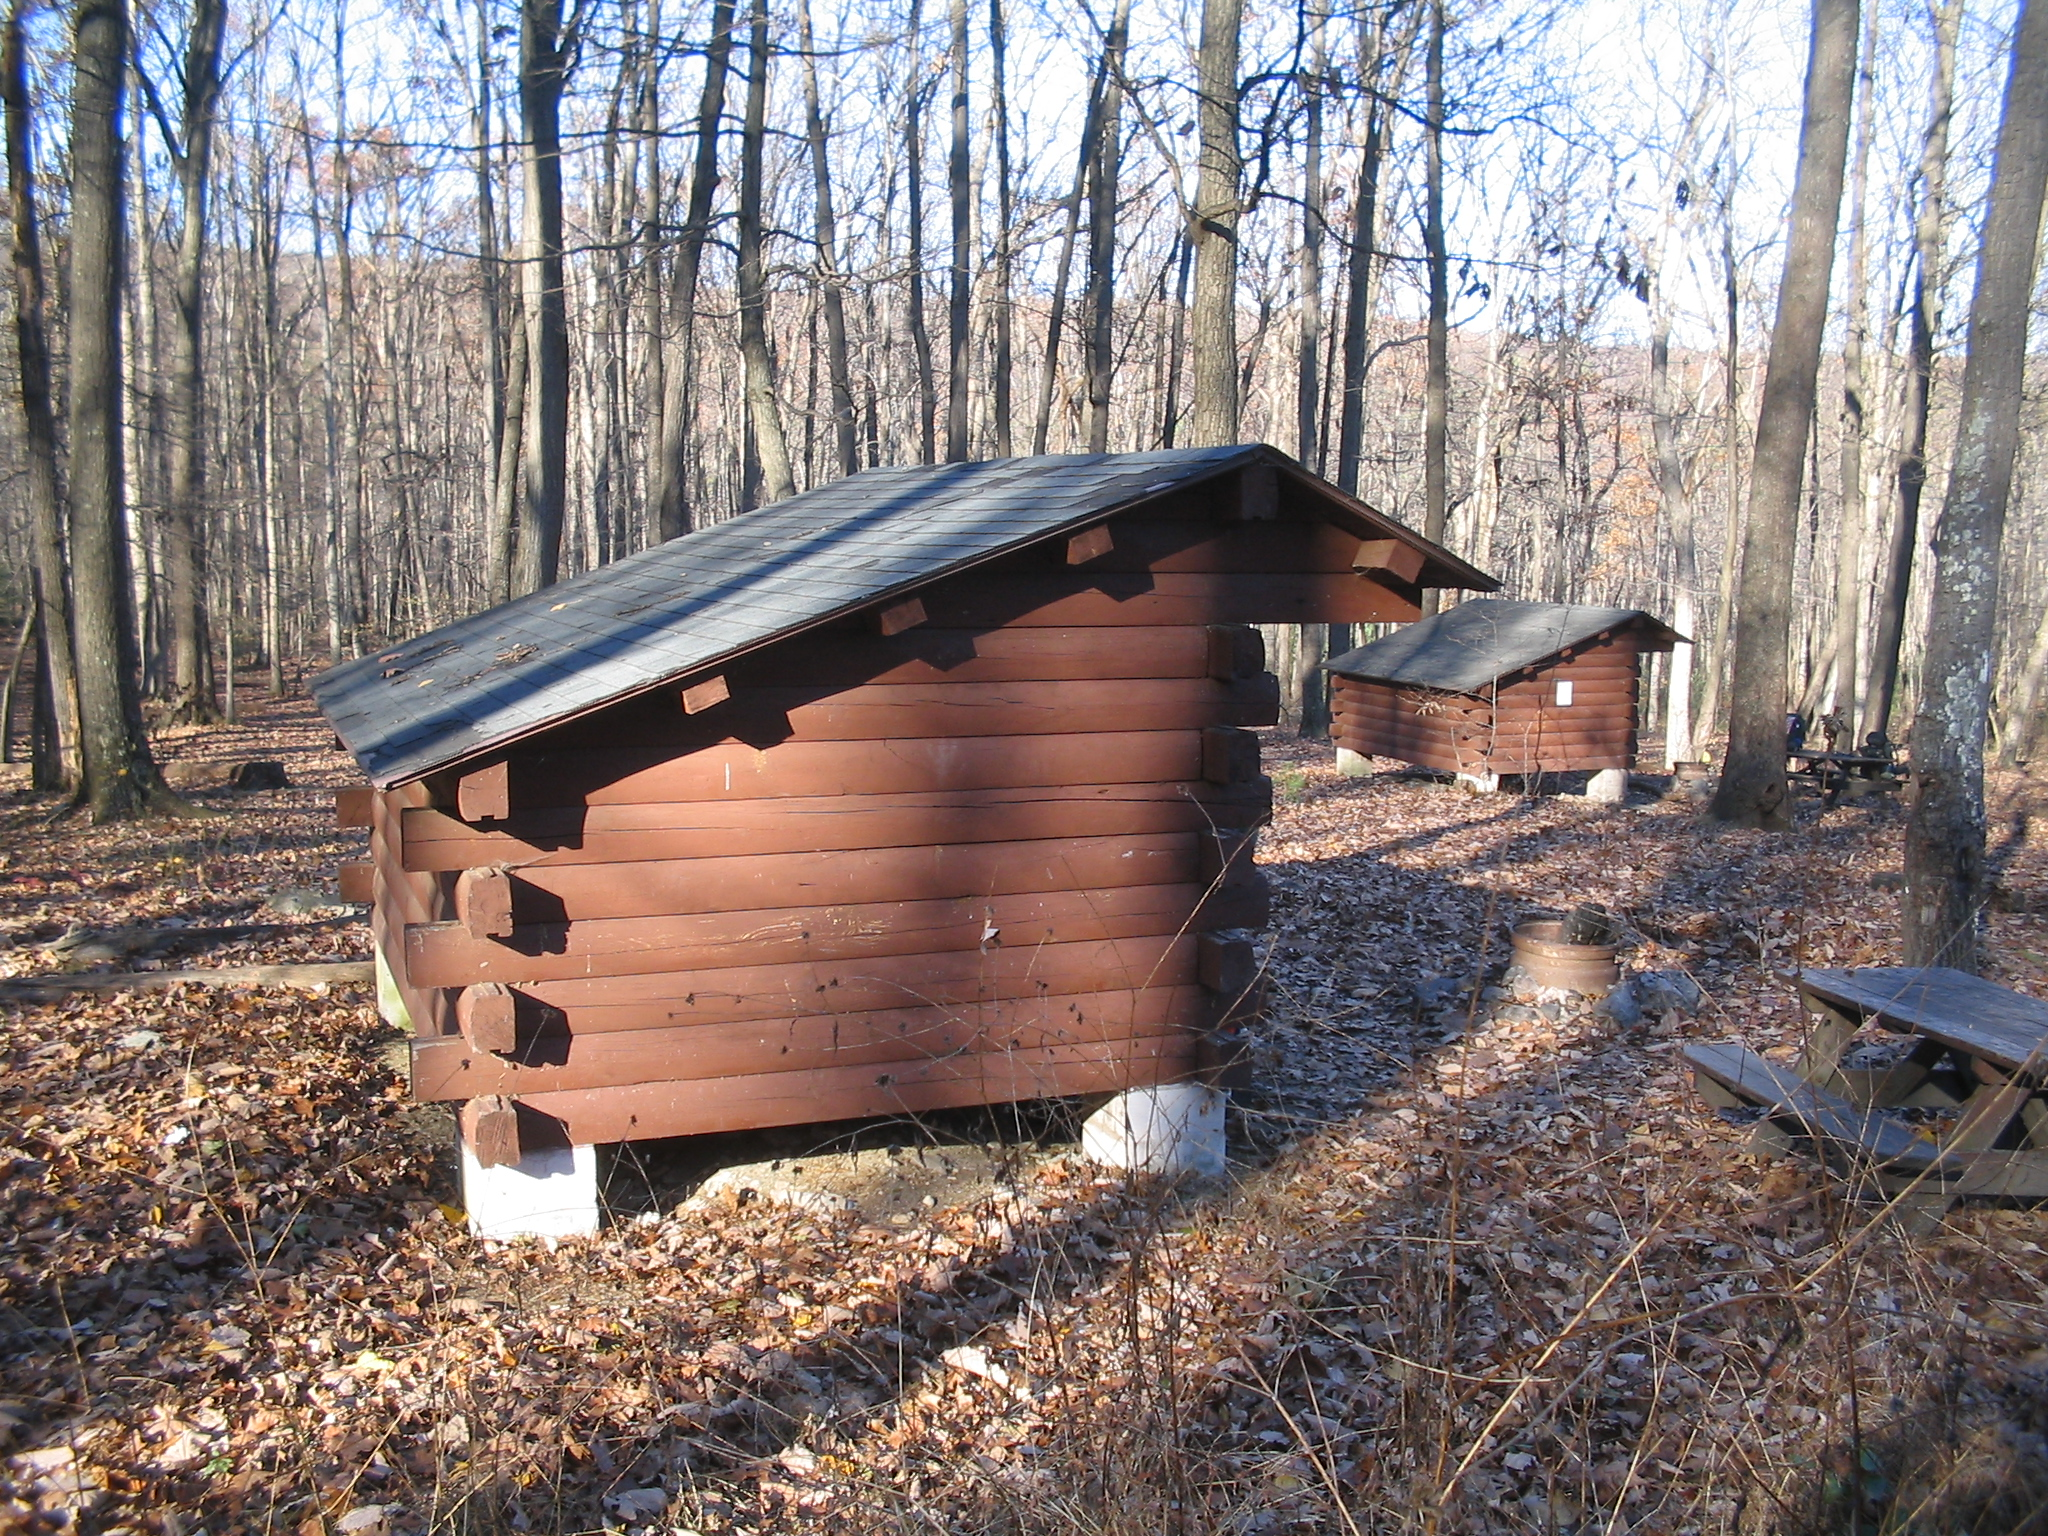 Types Of Lean To Shelter : File tom s run shelters g wikimedia commons